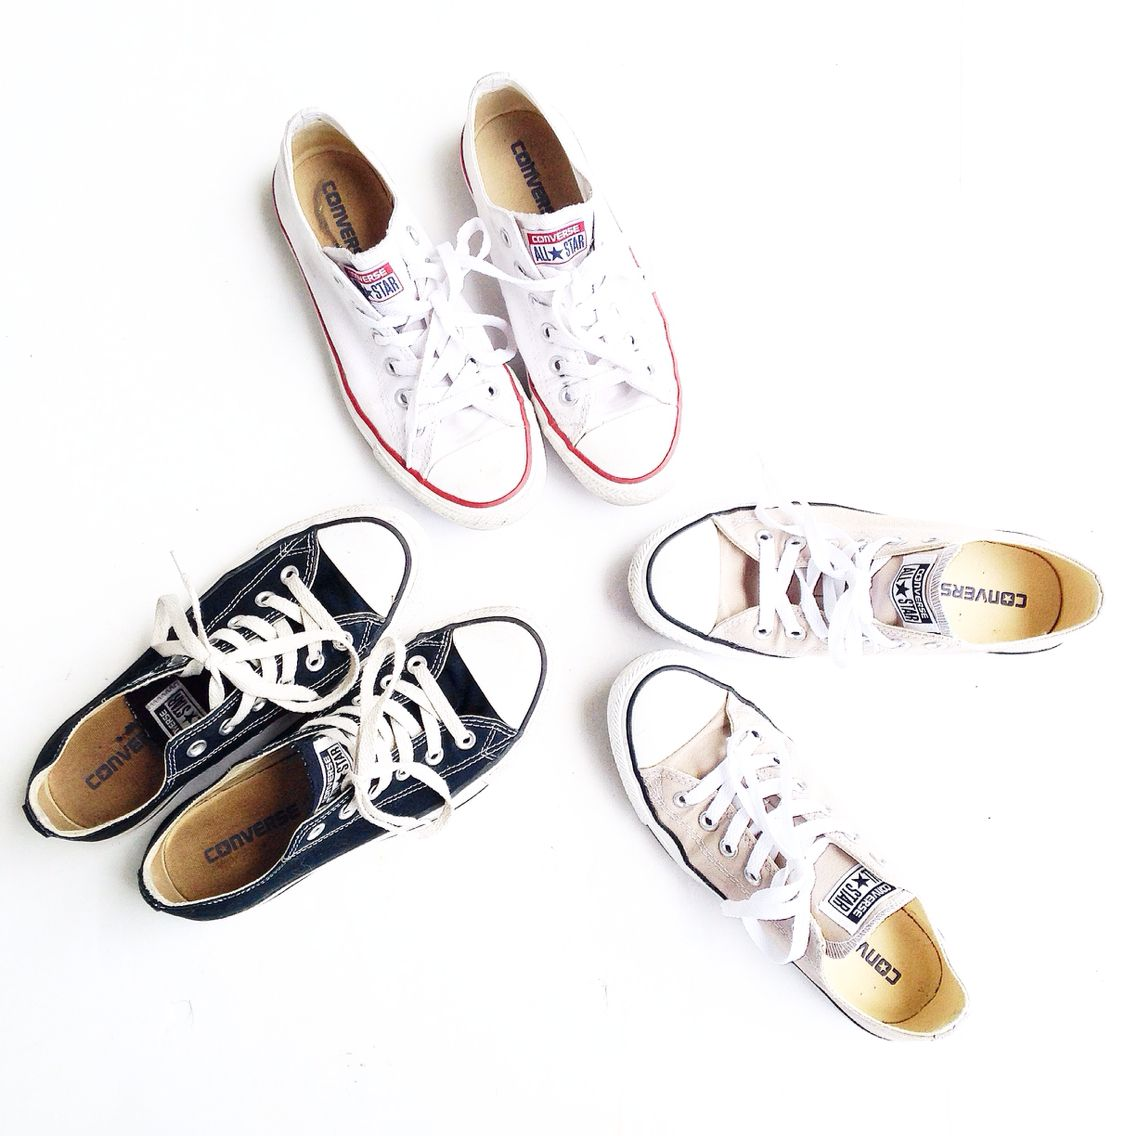 Converse. Flat lay. - Fashionably.fit   Fashion shoes, Sneaker ...